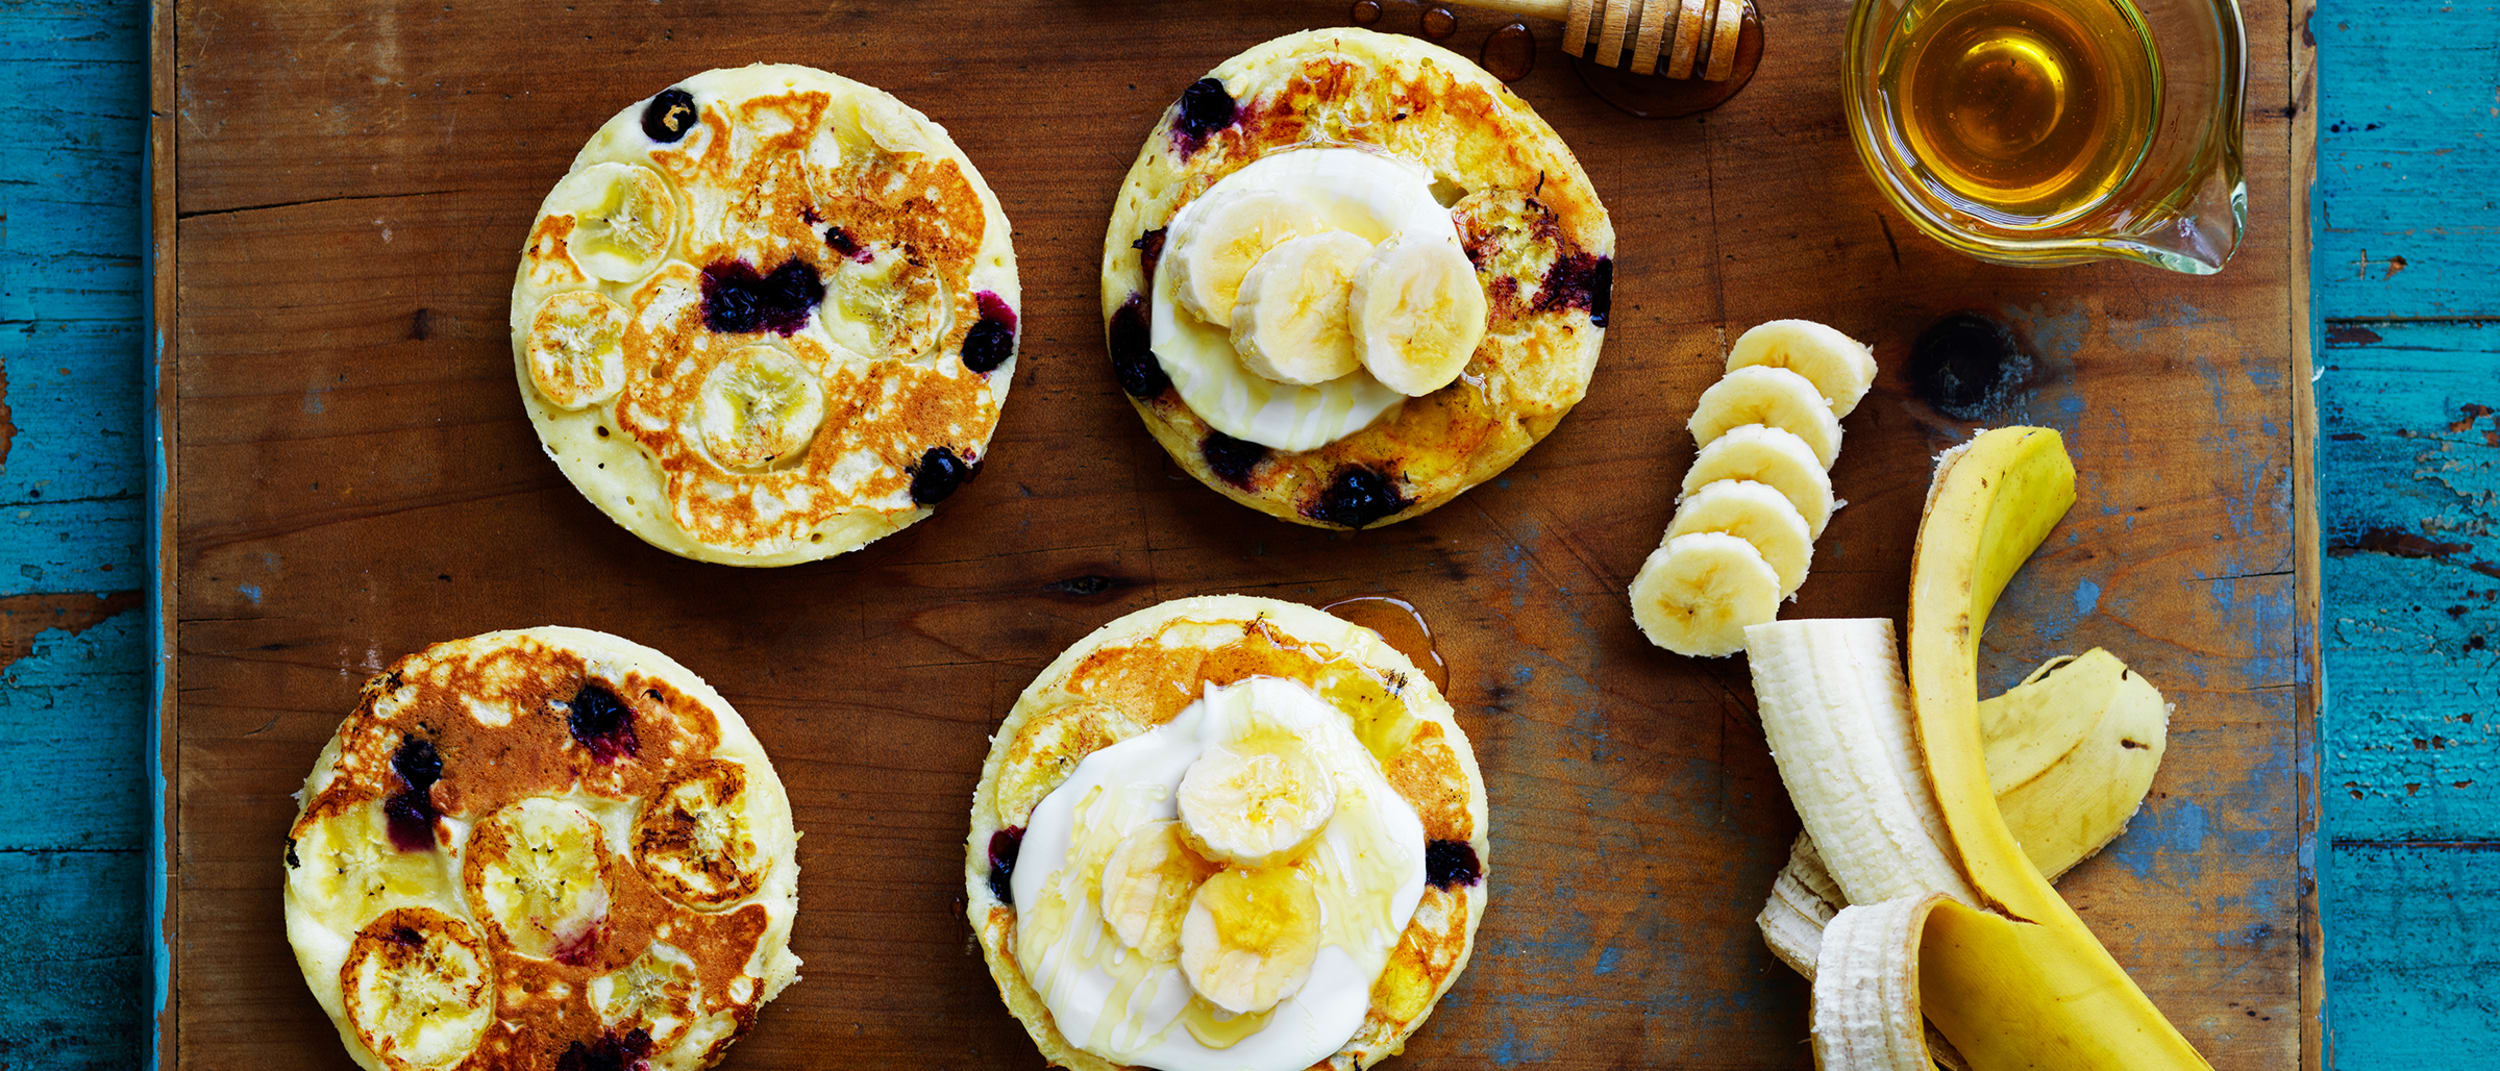 Banana and blueberry buttermilk pancakes